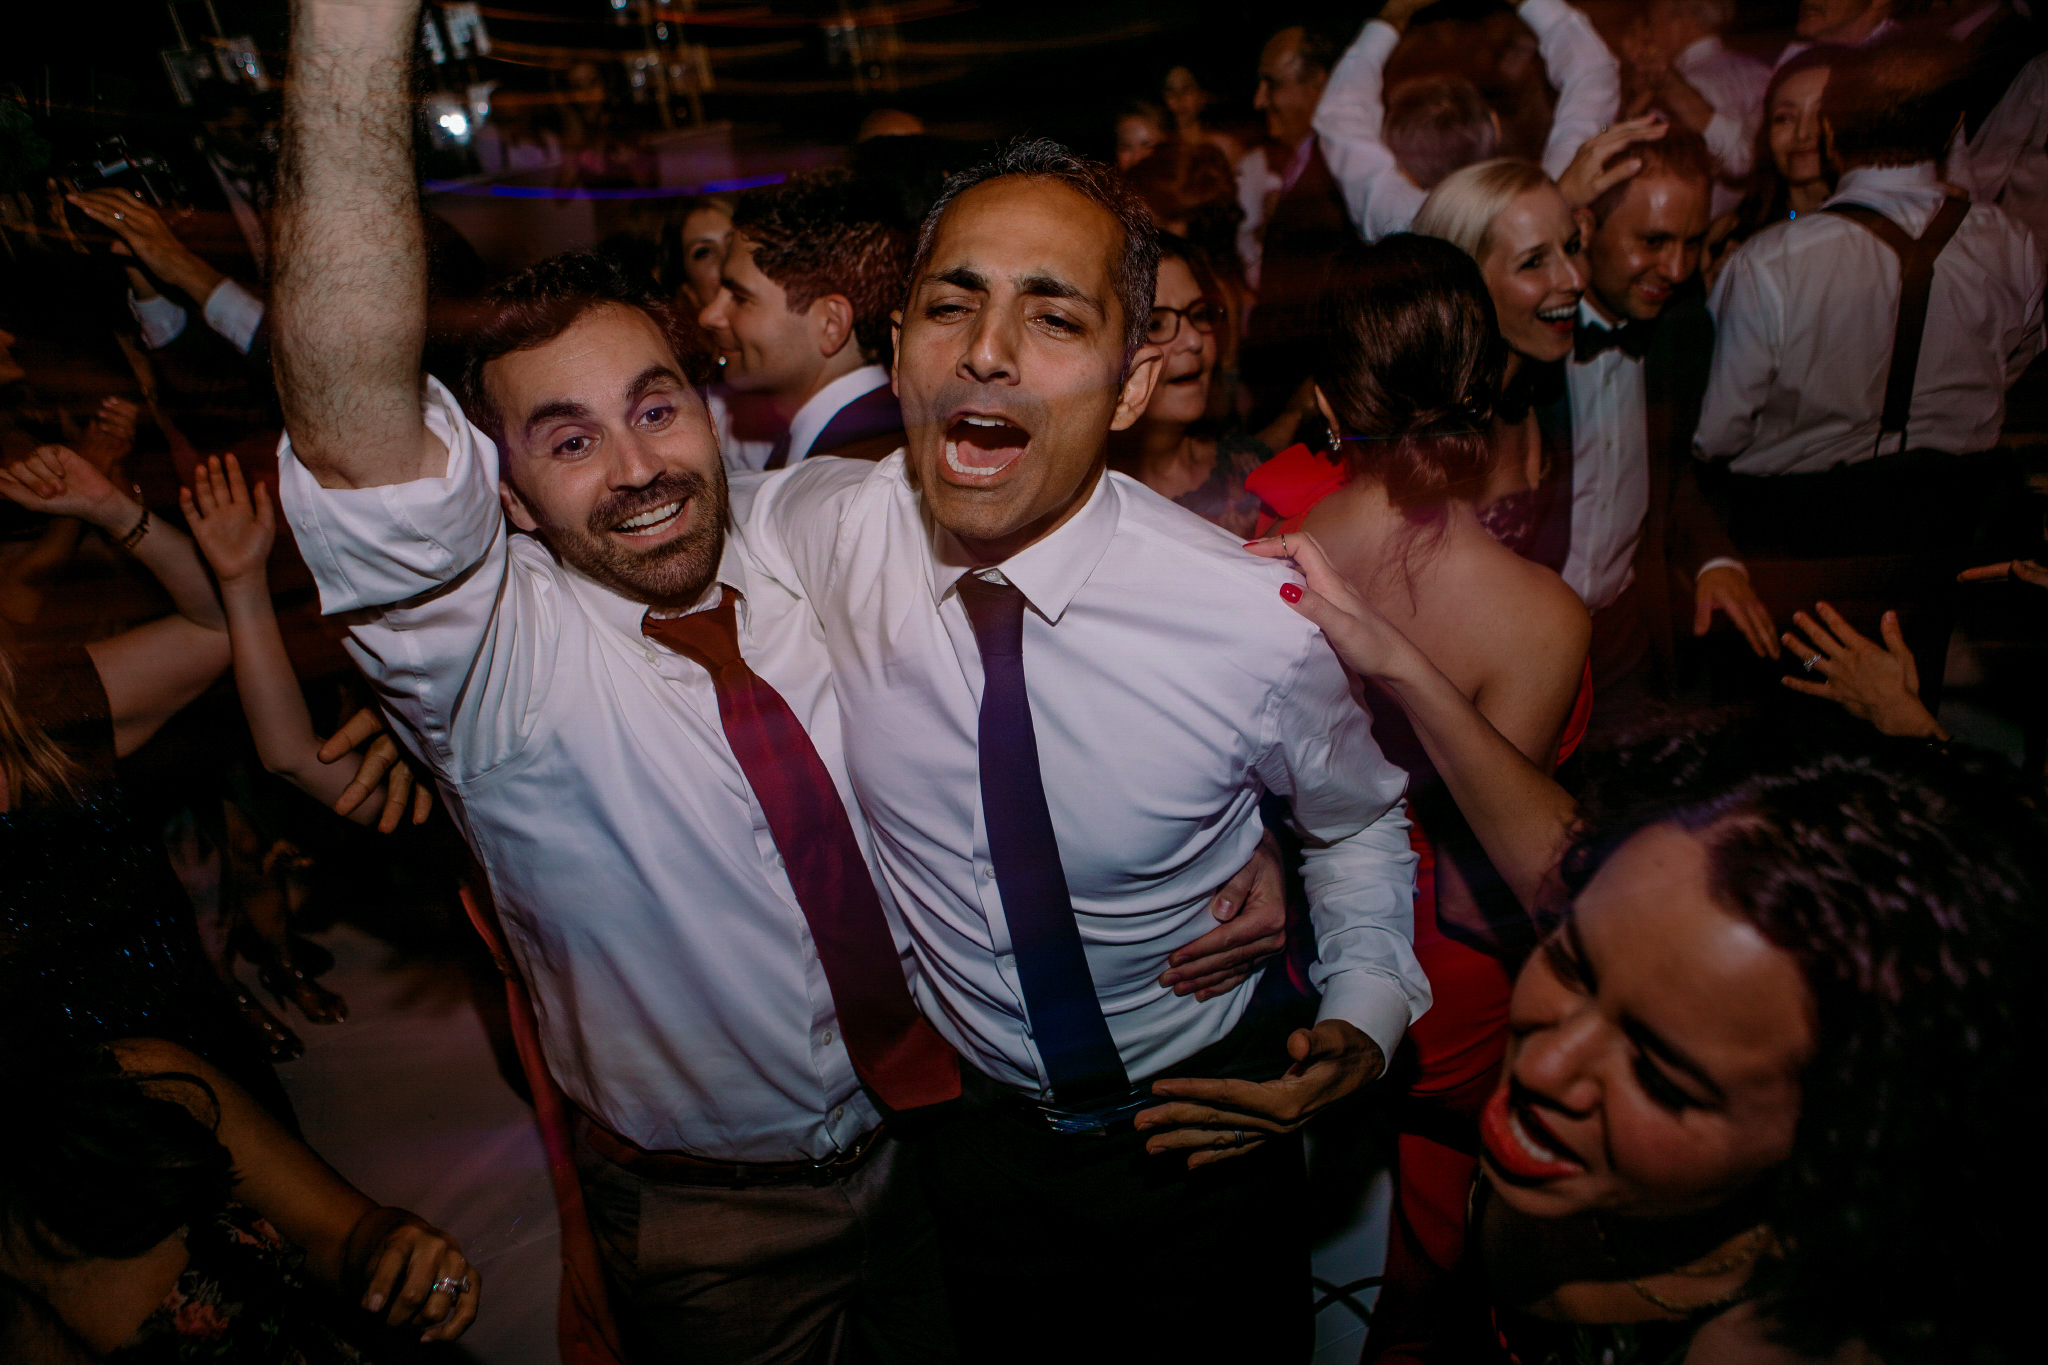 san diego wedding   photographer | 2 men in white shirts and different colored ties dancing   together in the middle of the dance floor